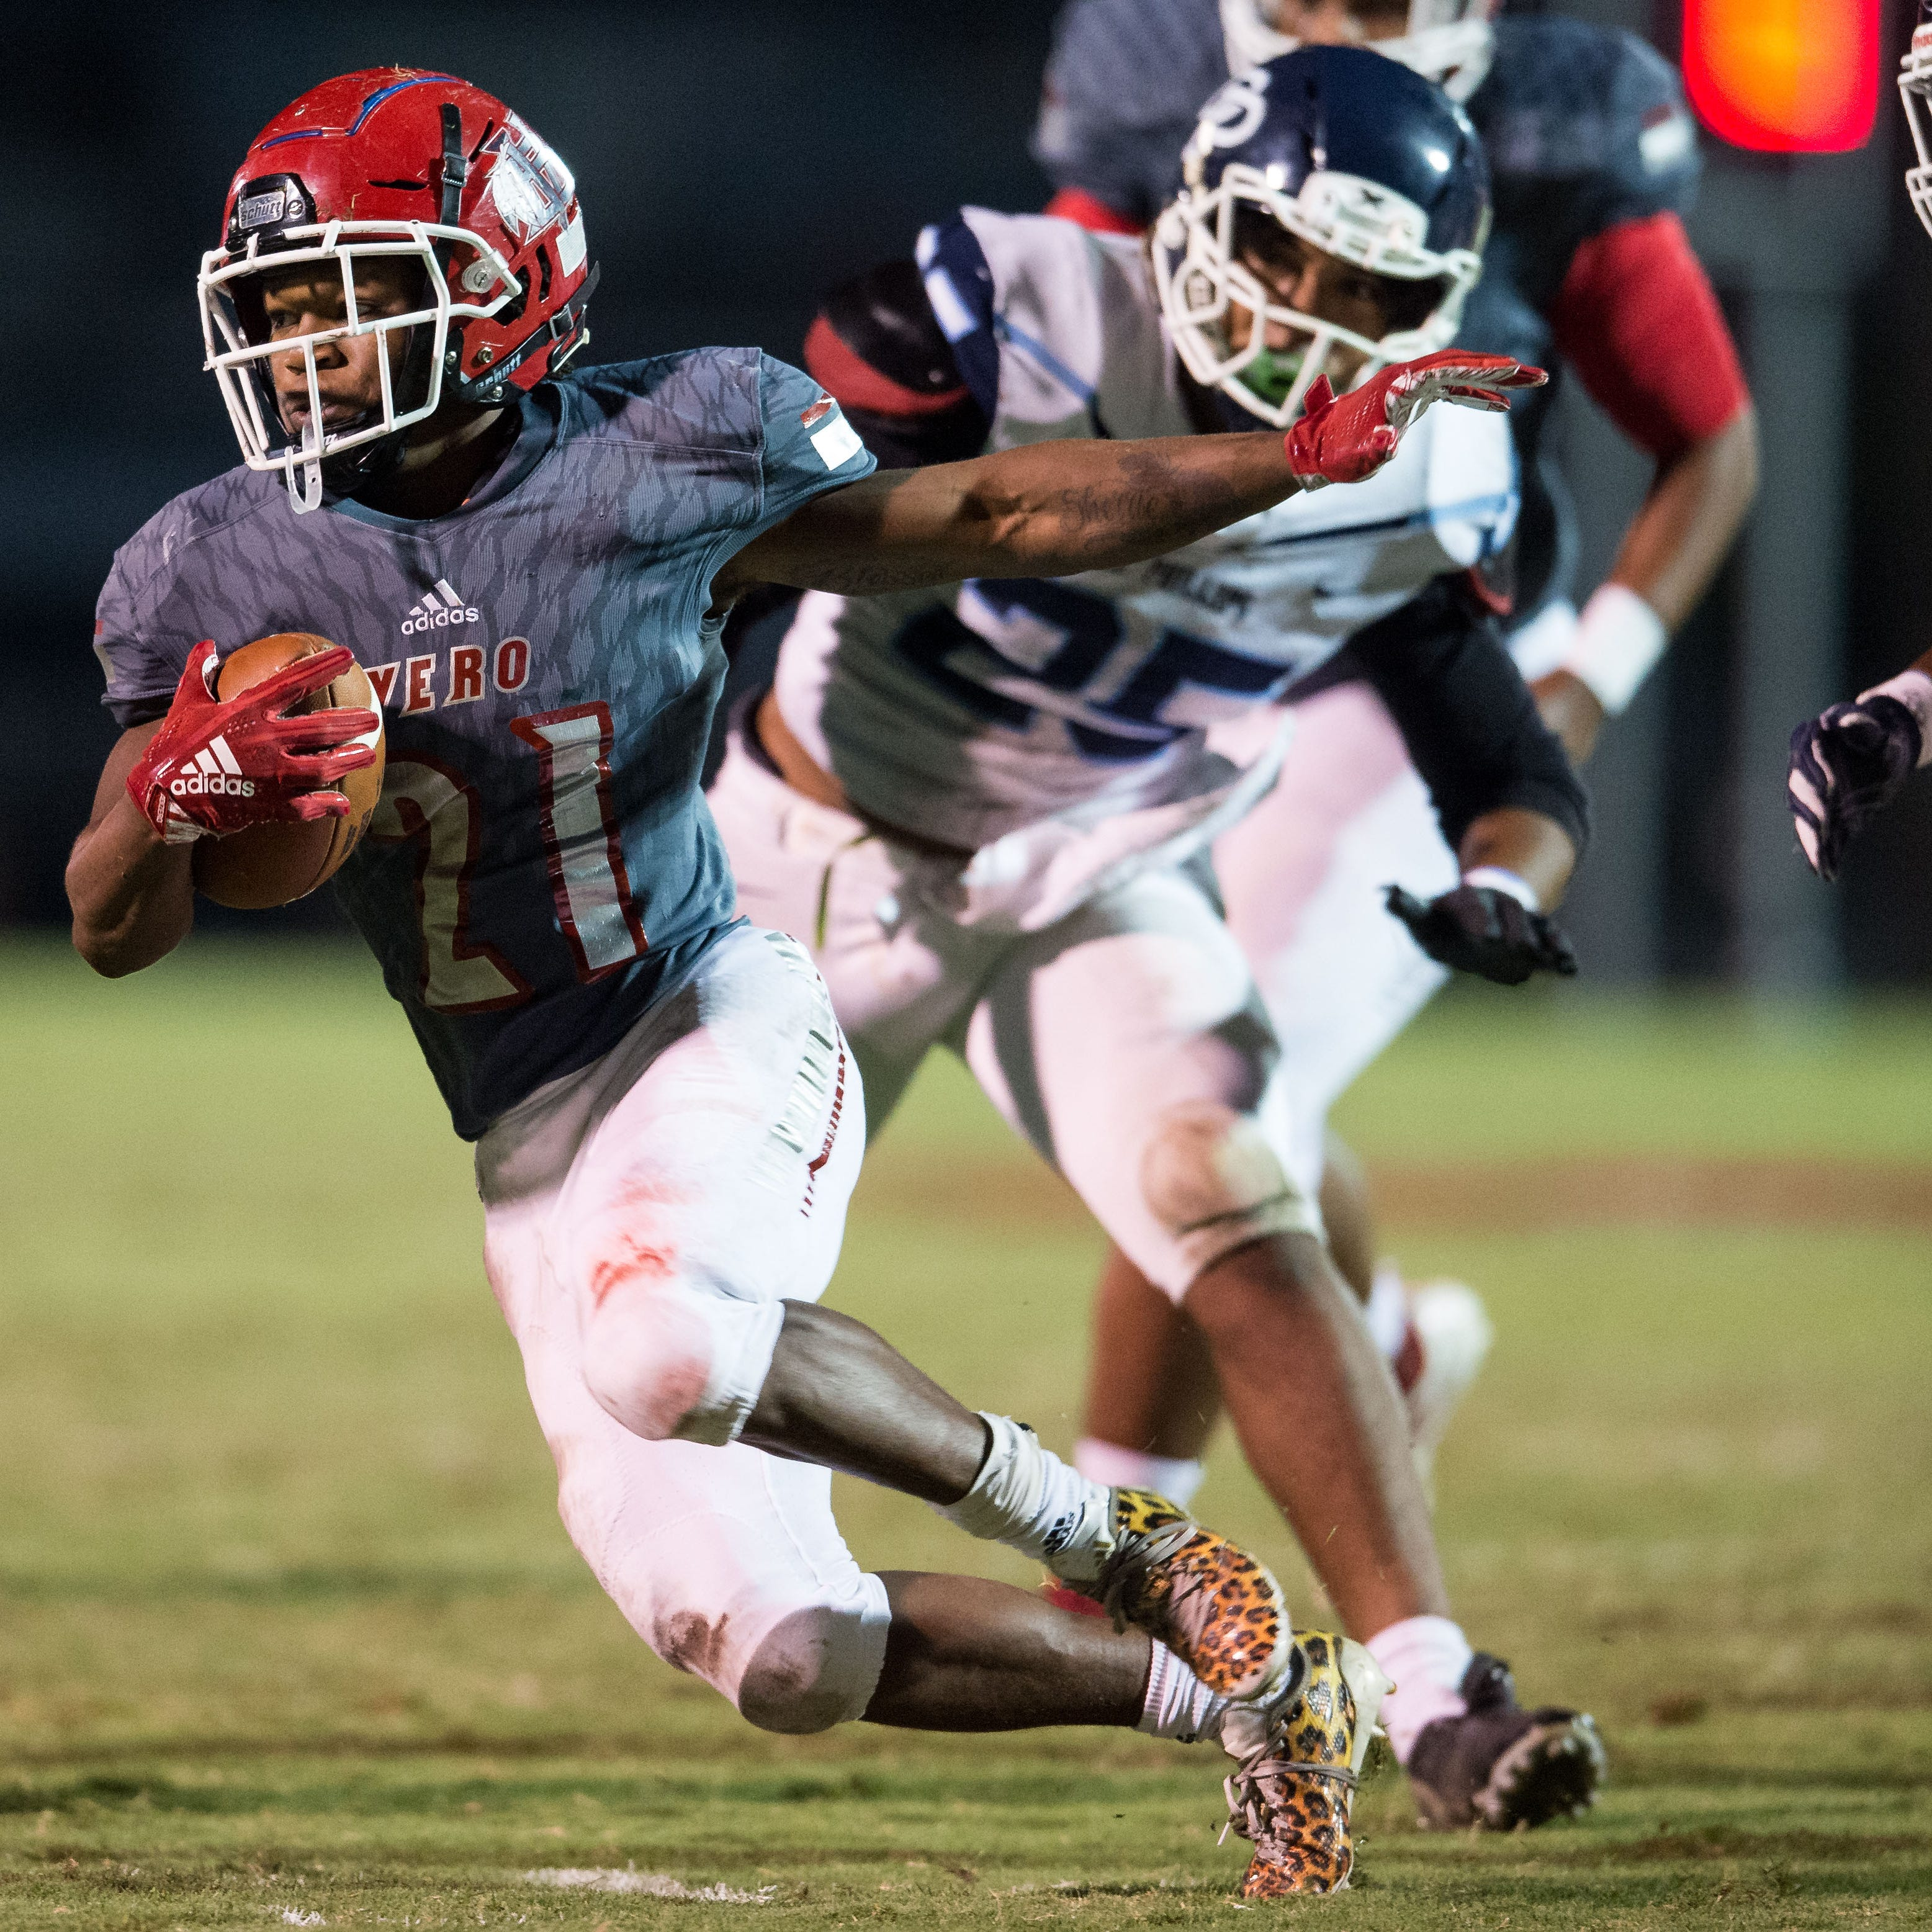 Vero Beach fails to convert on its chances in regional playoff loss to Dr. Phillips